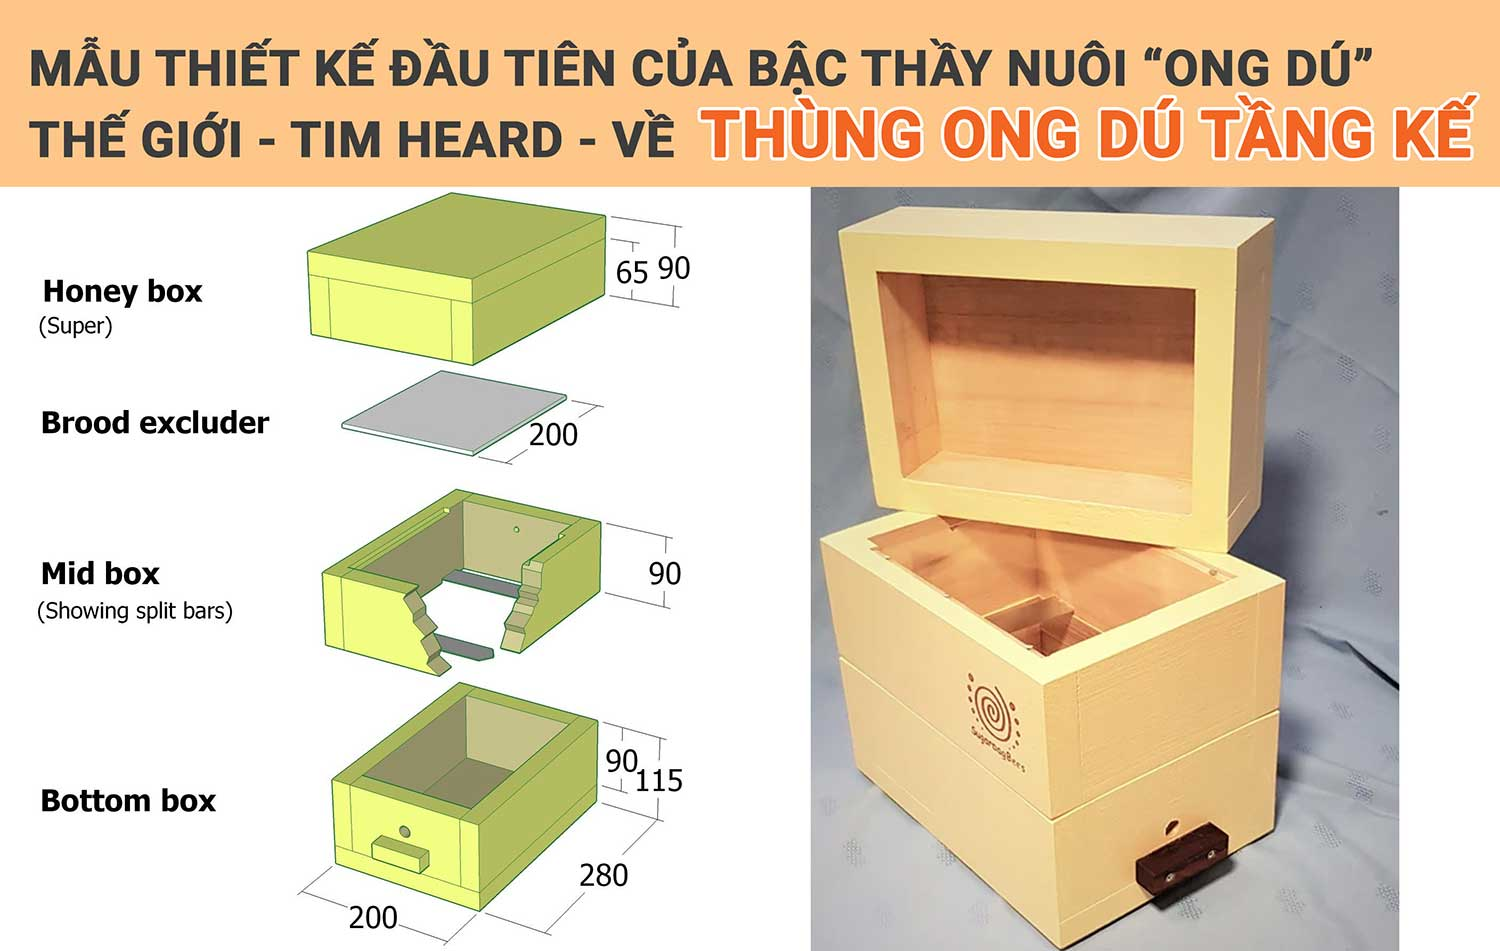 thiết kế của Tim heard về sugarbag bees hive boxes